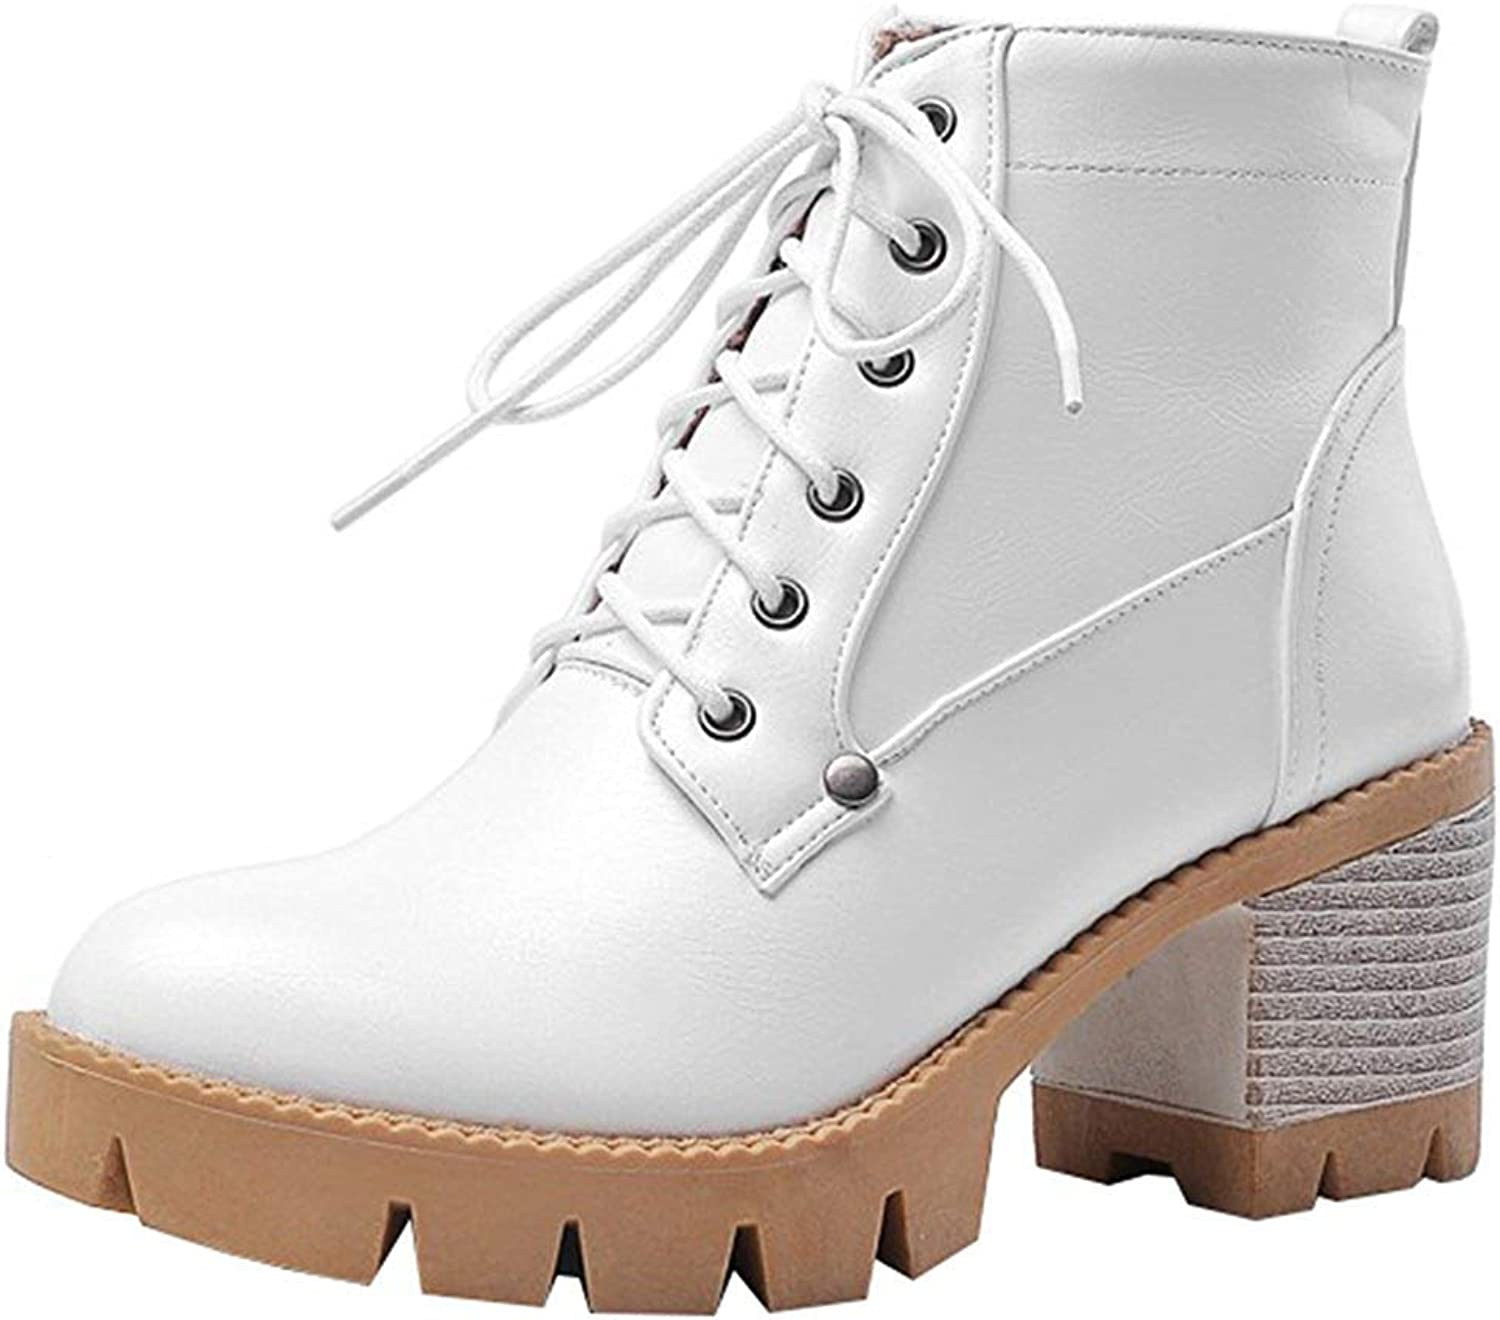 Gcanwea Women's Trendy Stacked Block Medium Heel Platform Ankle Booties Round Toe Lace Up Short Boots White 8 M US